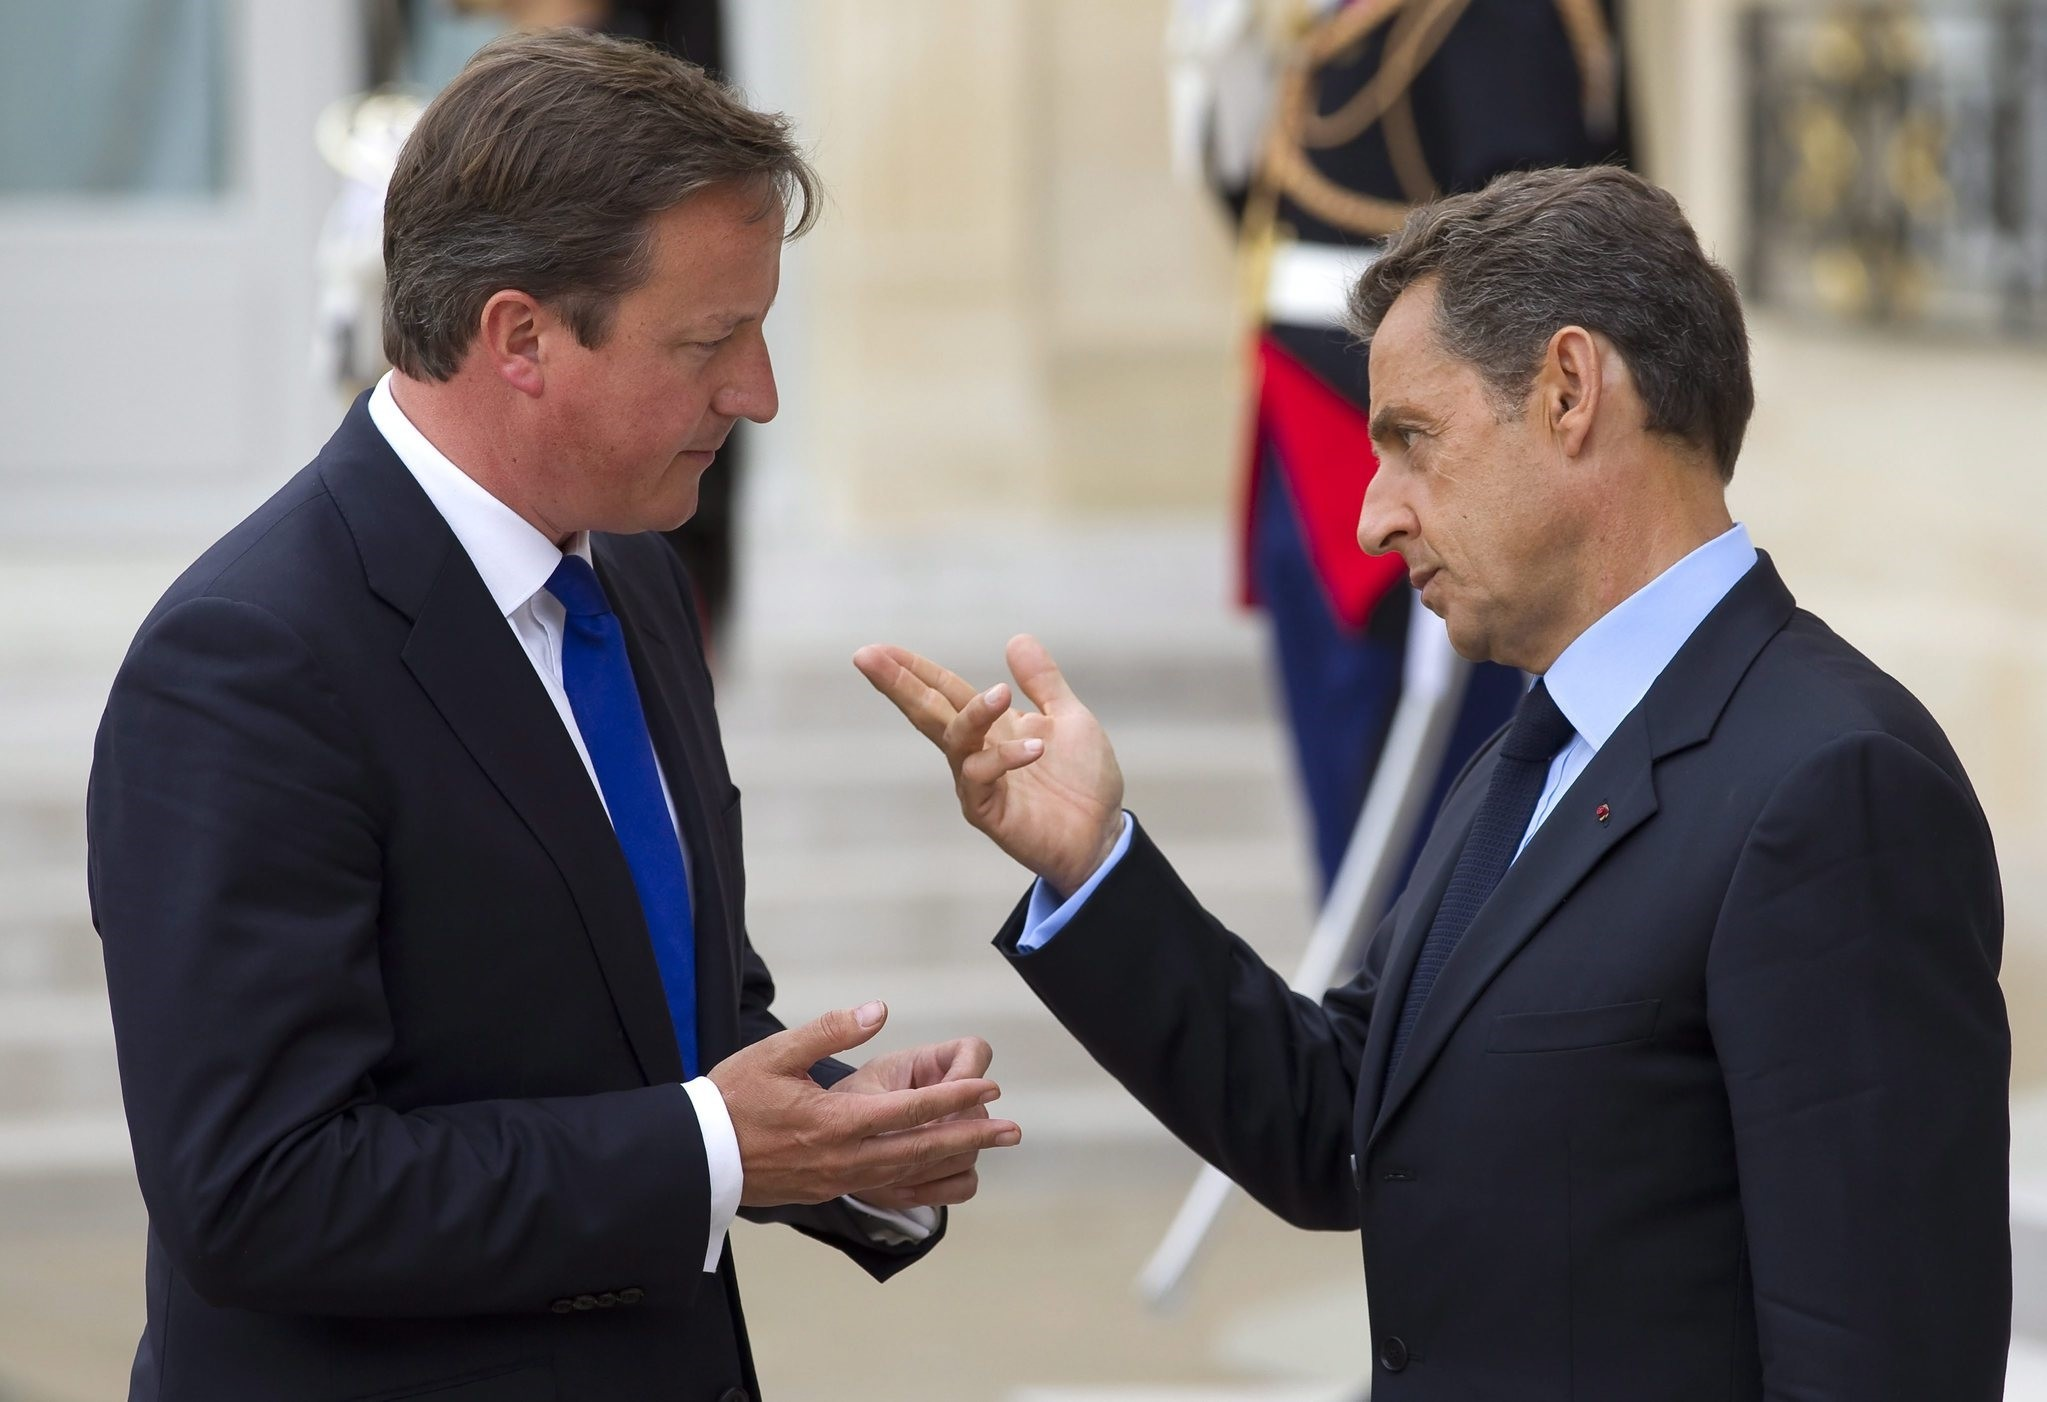 French President Nicolas Sarkozy (R) and Britain's Prime Minister David Cameron (L) before a conference on Libya at the Elysee Palace in Paris, France. (EPA Photo)